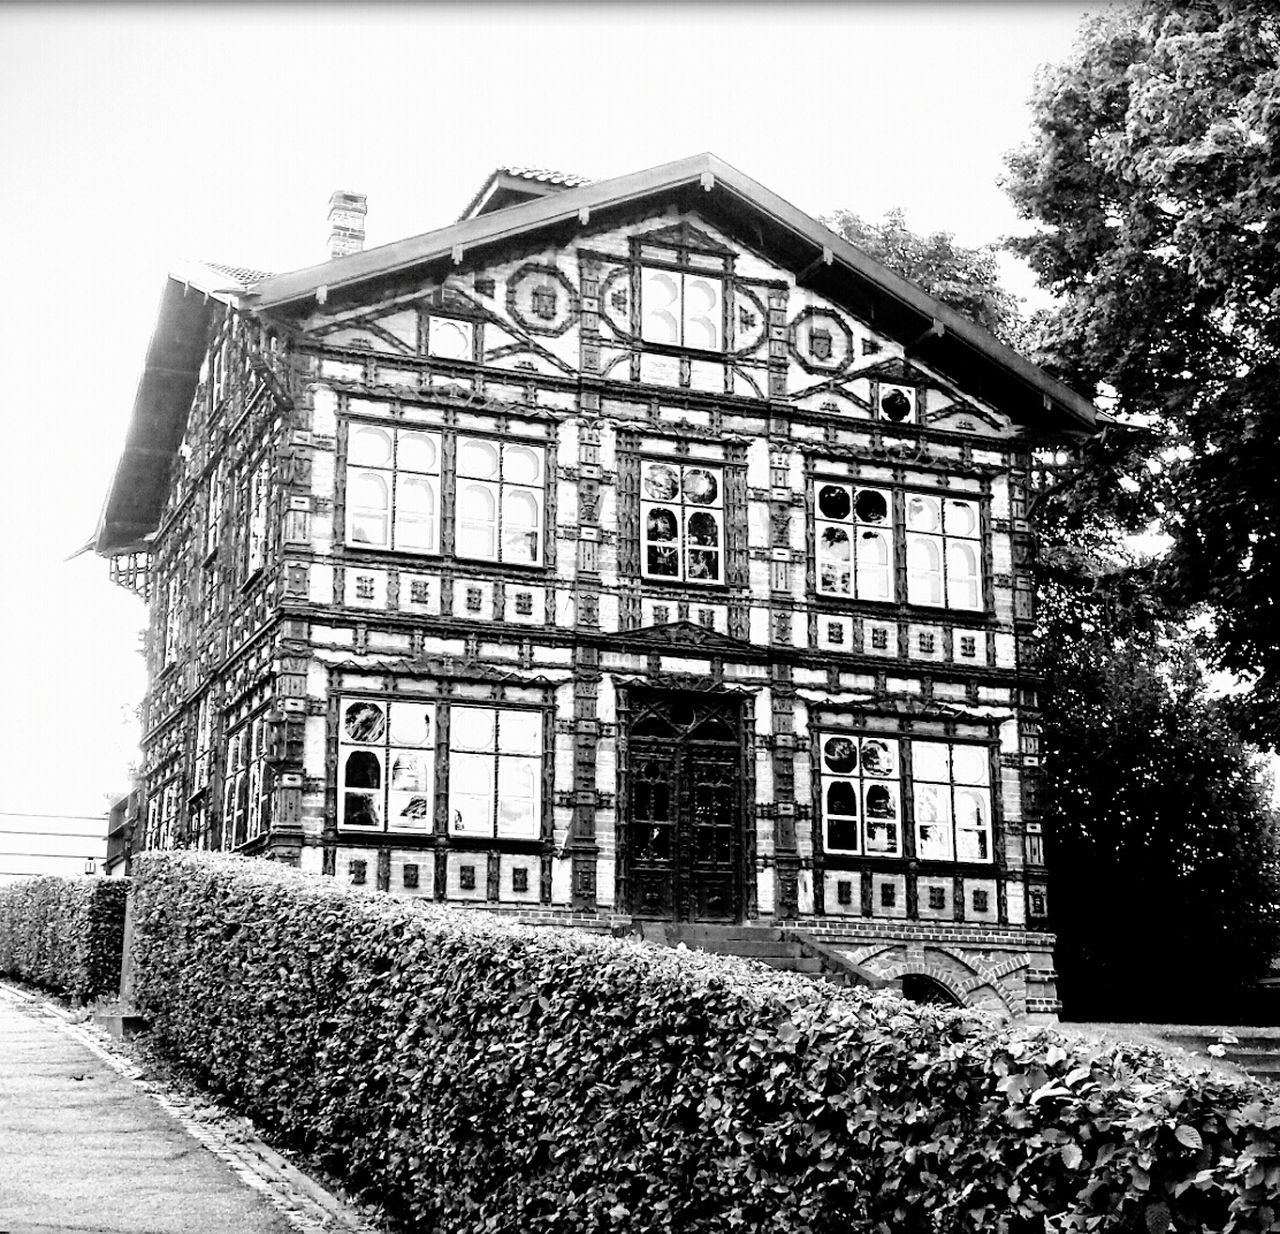 Junkerhaus Lemgo No People Outdoor Photography Blackandwhite Historic Museum Architecture Fachwerk Historisch